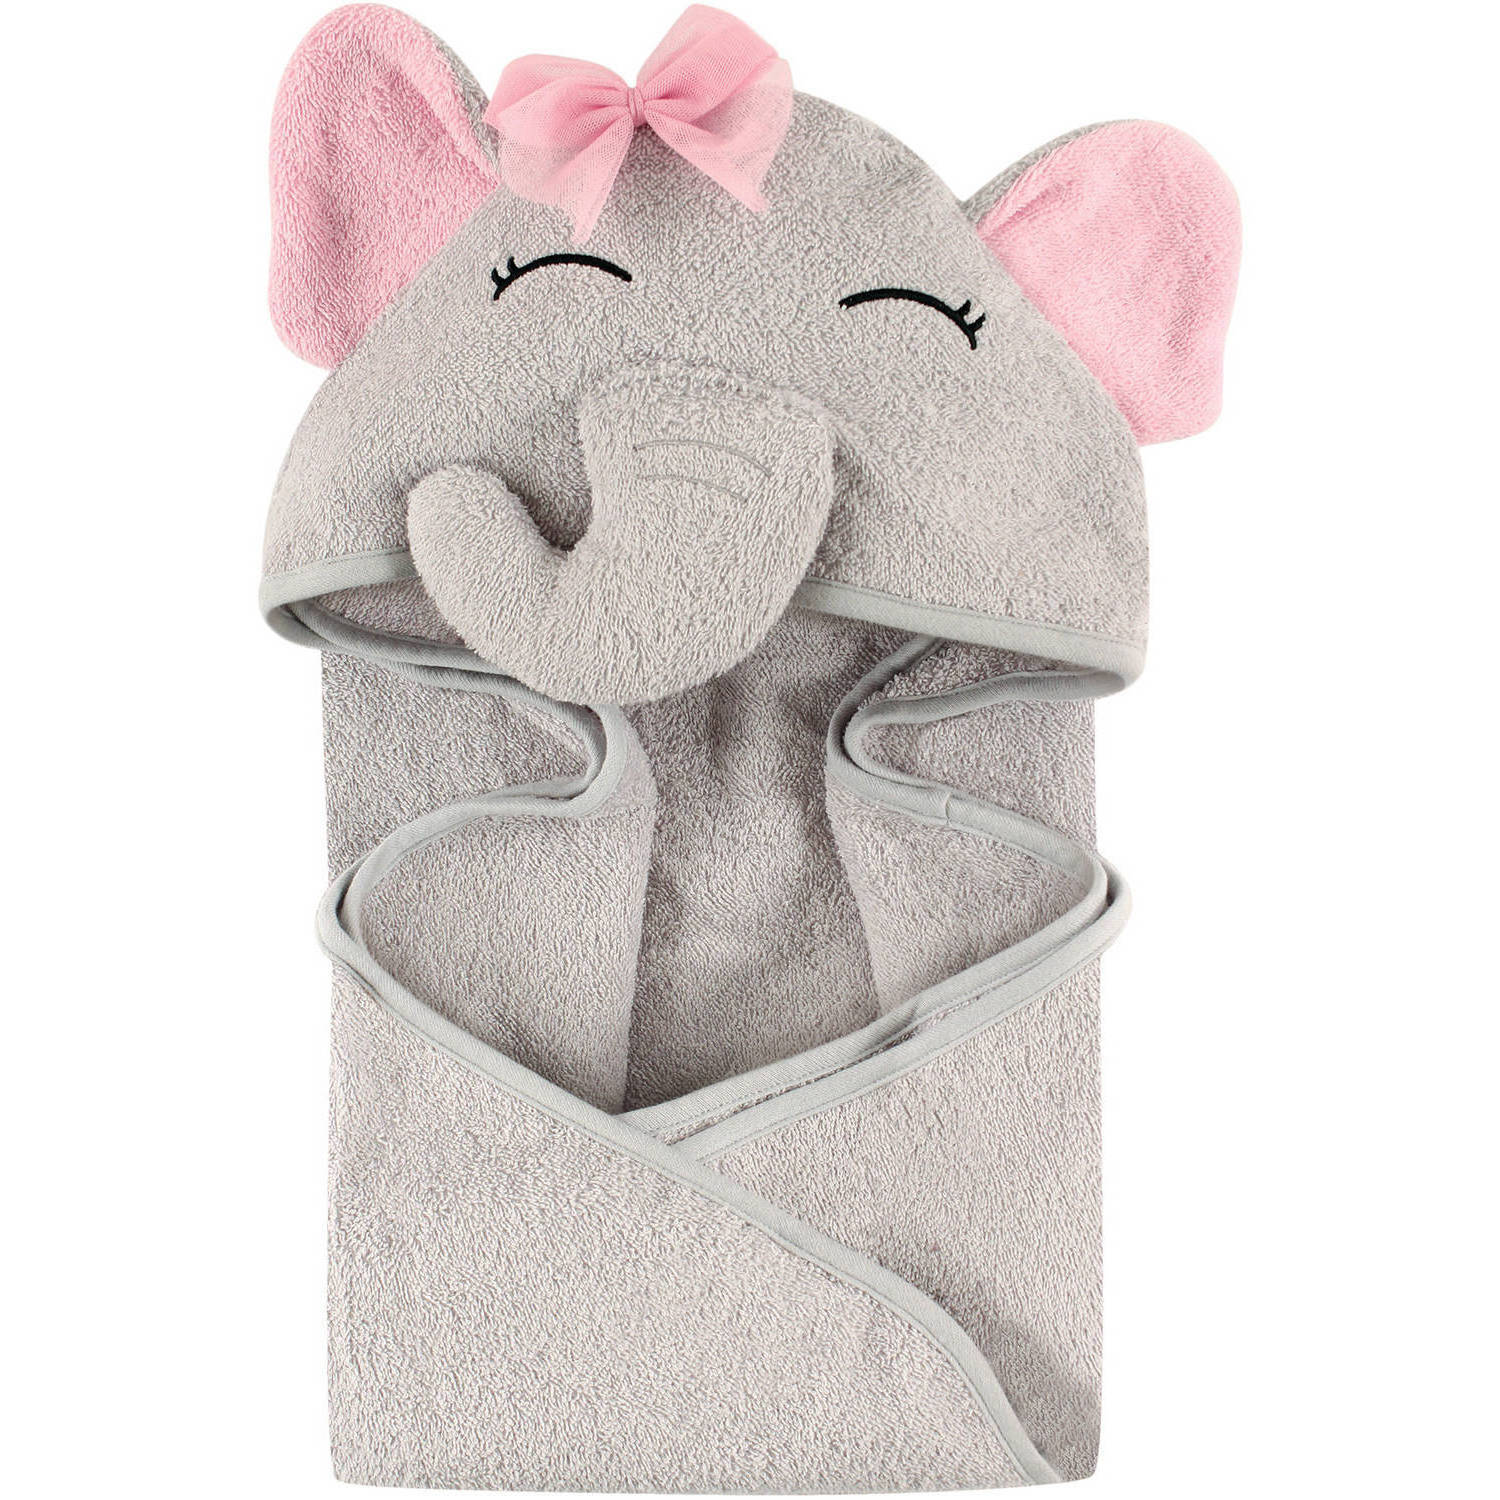 Hudson Baby Animal Hooded Towel, Pretty Elephant